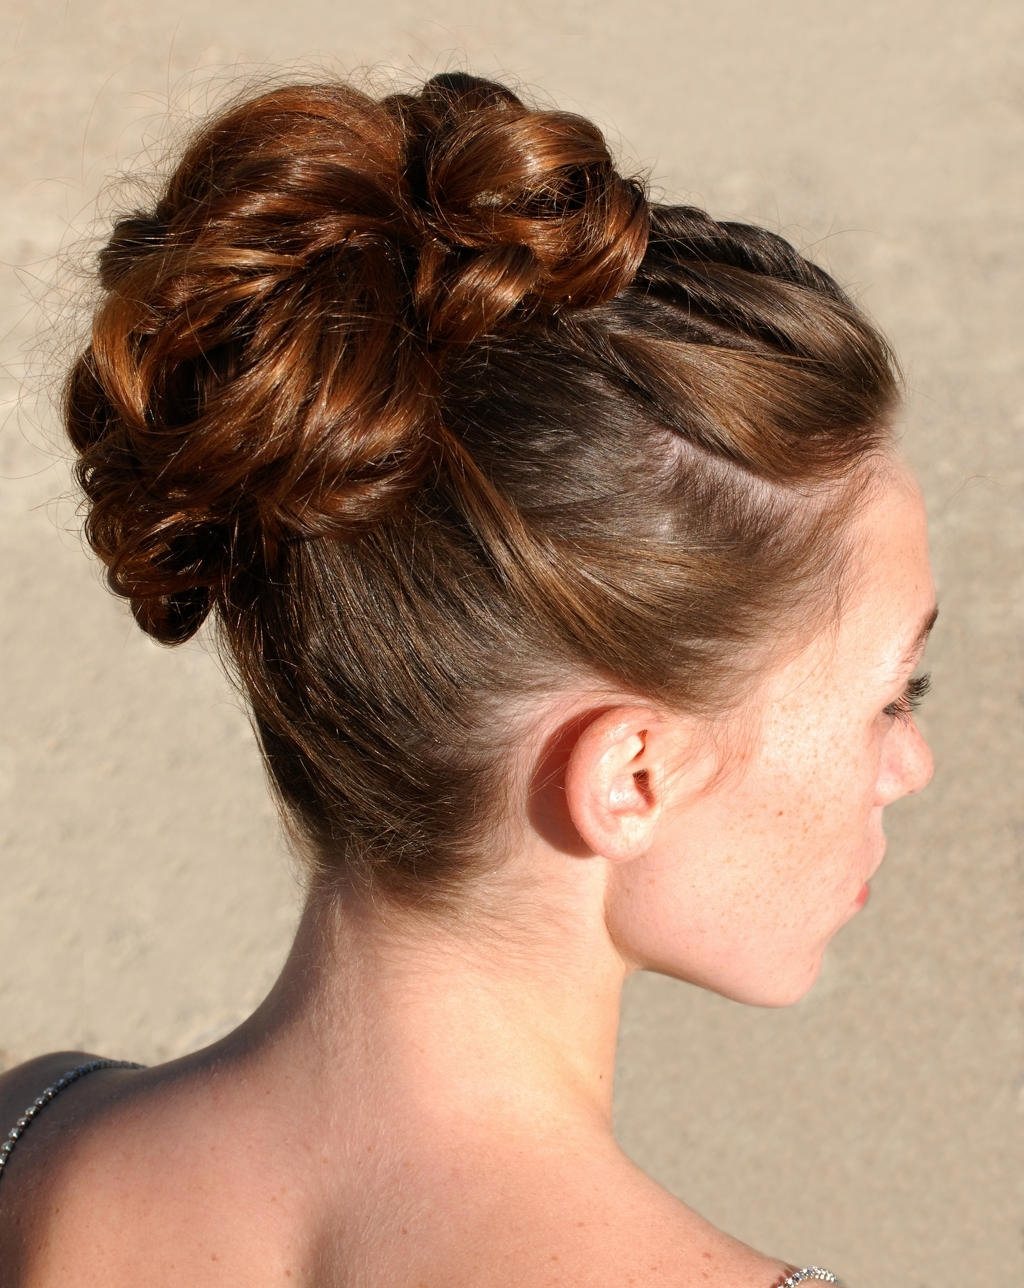 100+ Delightful Prom Hairstyles, Ideas, Haircuts | Design Trends Within Updo Hairstyles For Thick Hair (View 1 of 15)